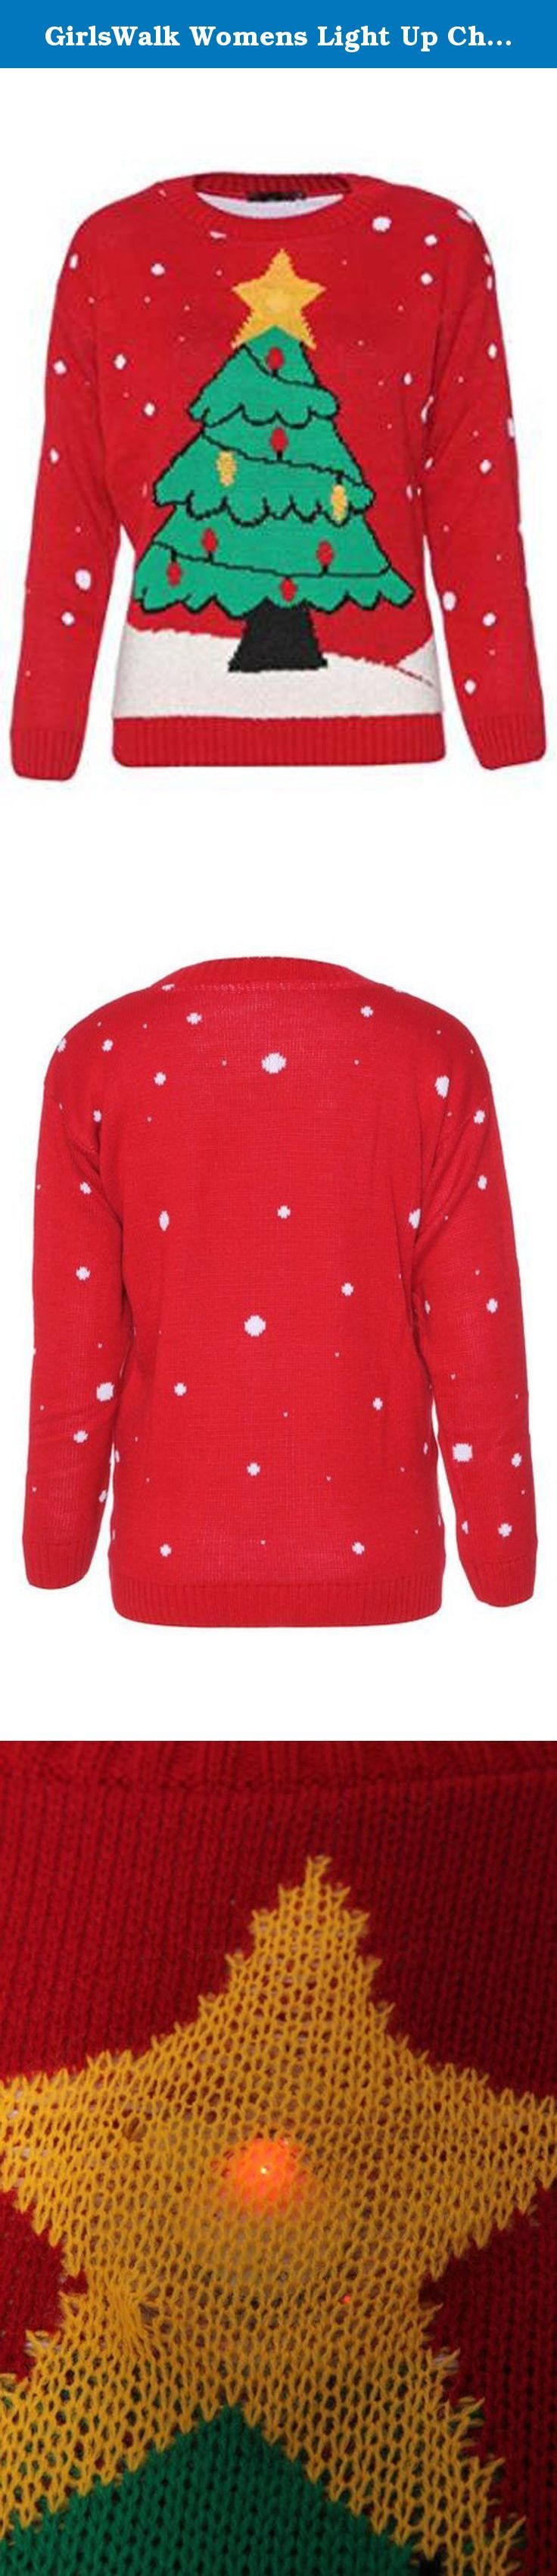 "GirlsWalk Womens Light Up Christmas Tree Jumper. Womens Light Up Christmas Tree Jumper, 100% Acrylic, Incredibly soft and warm Material, Approximate Length: 28"", Unisex Novelty Knitted Christmas Jumper, Machine Washable,."